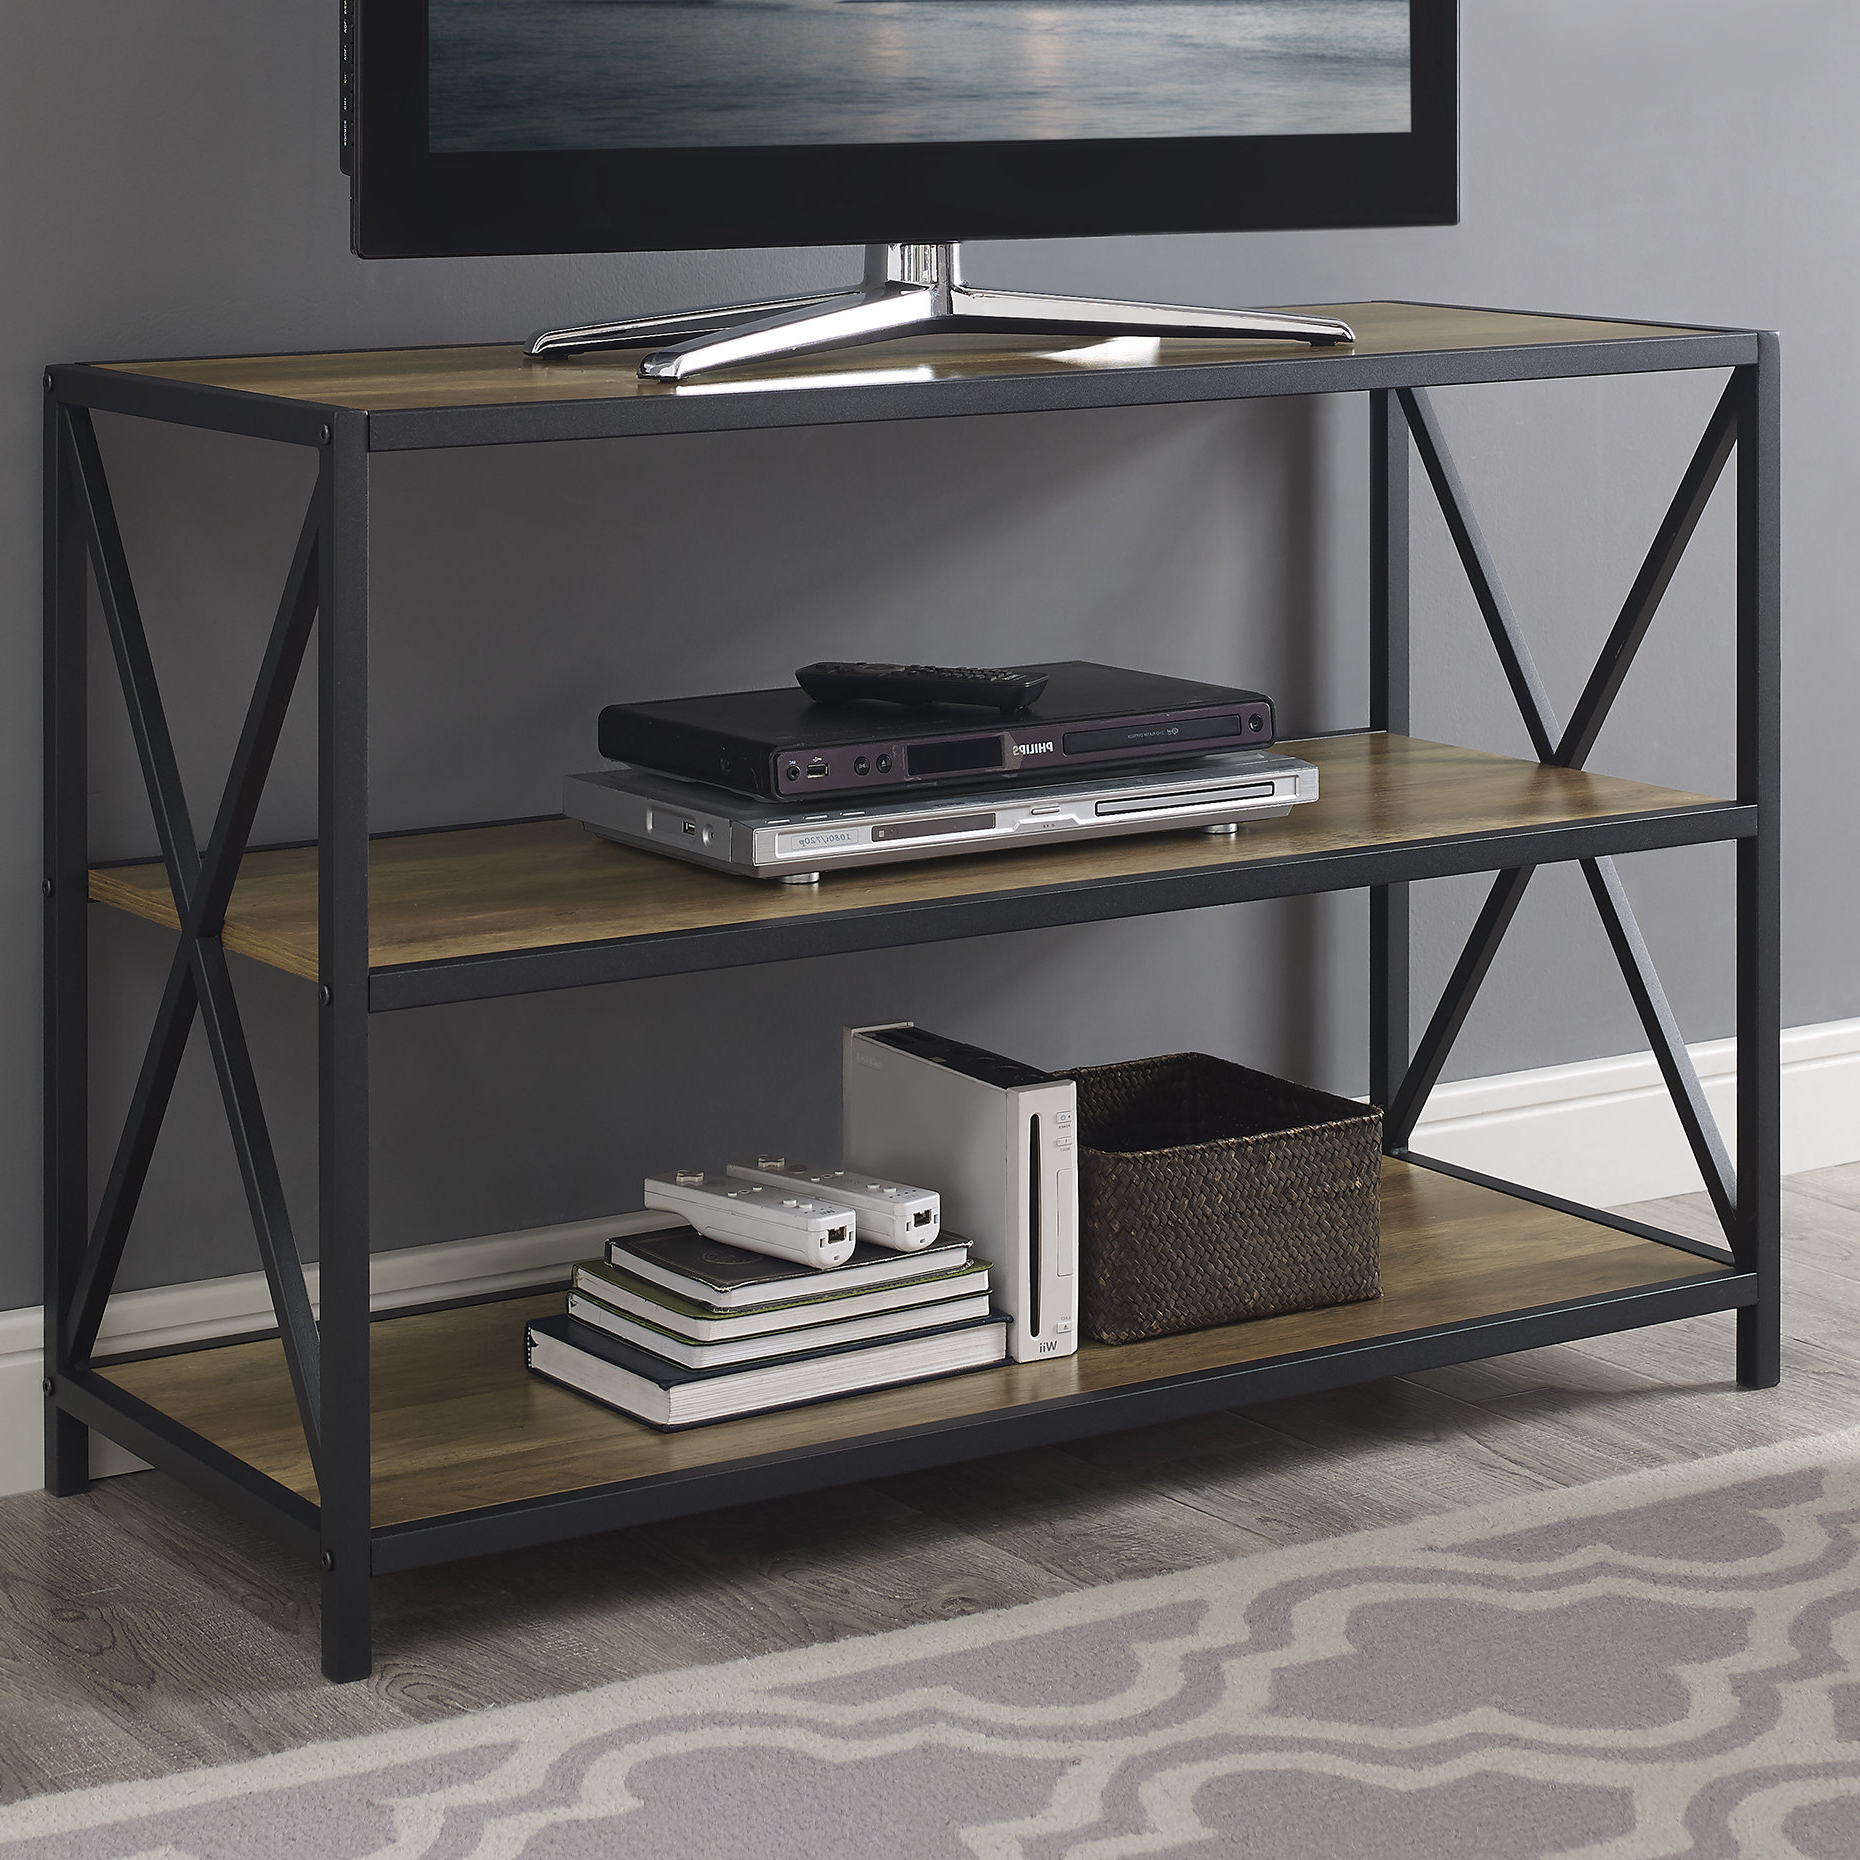 Preferred Adair Etagere Bookcases Throughout Adair Etagere Bookcase (View 10 of 20)